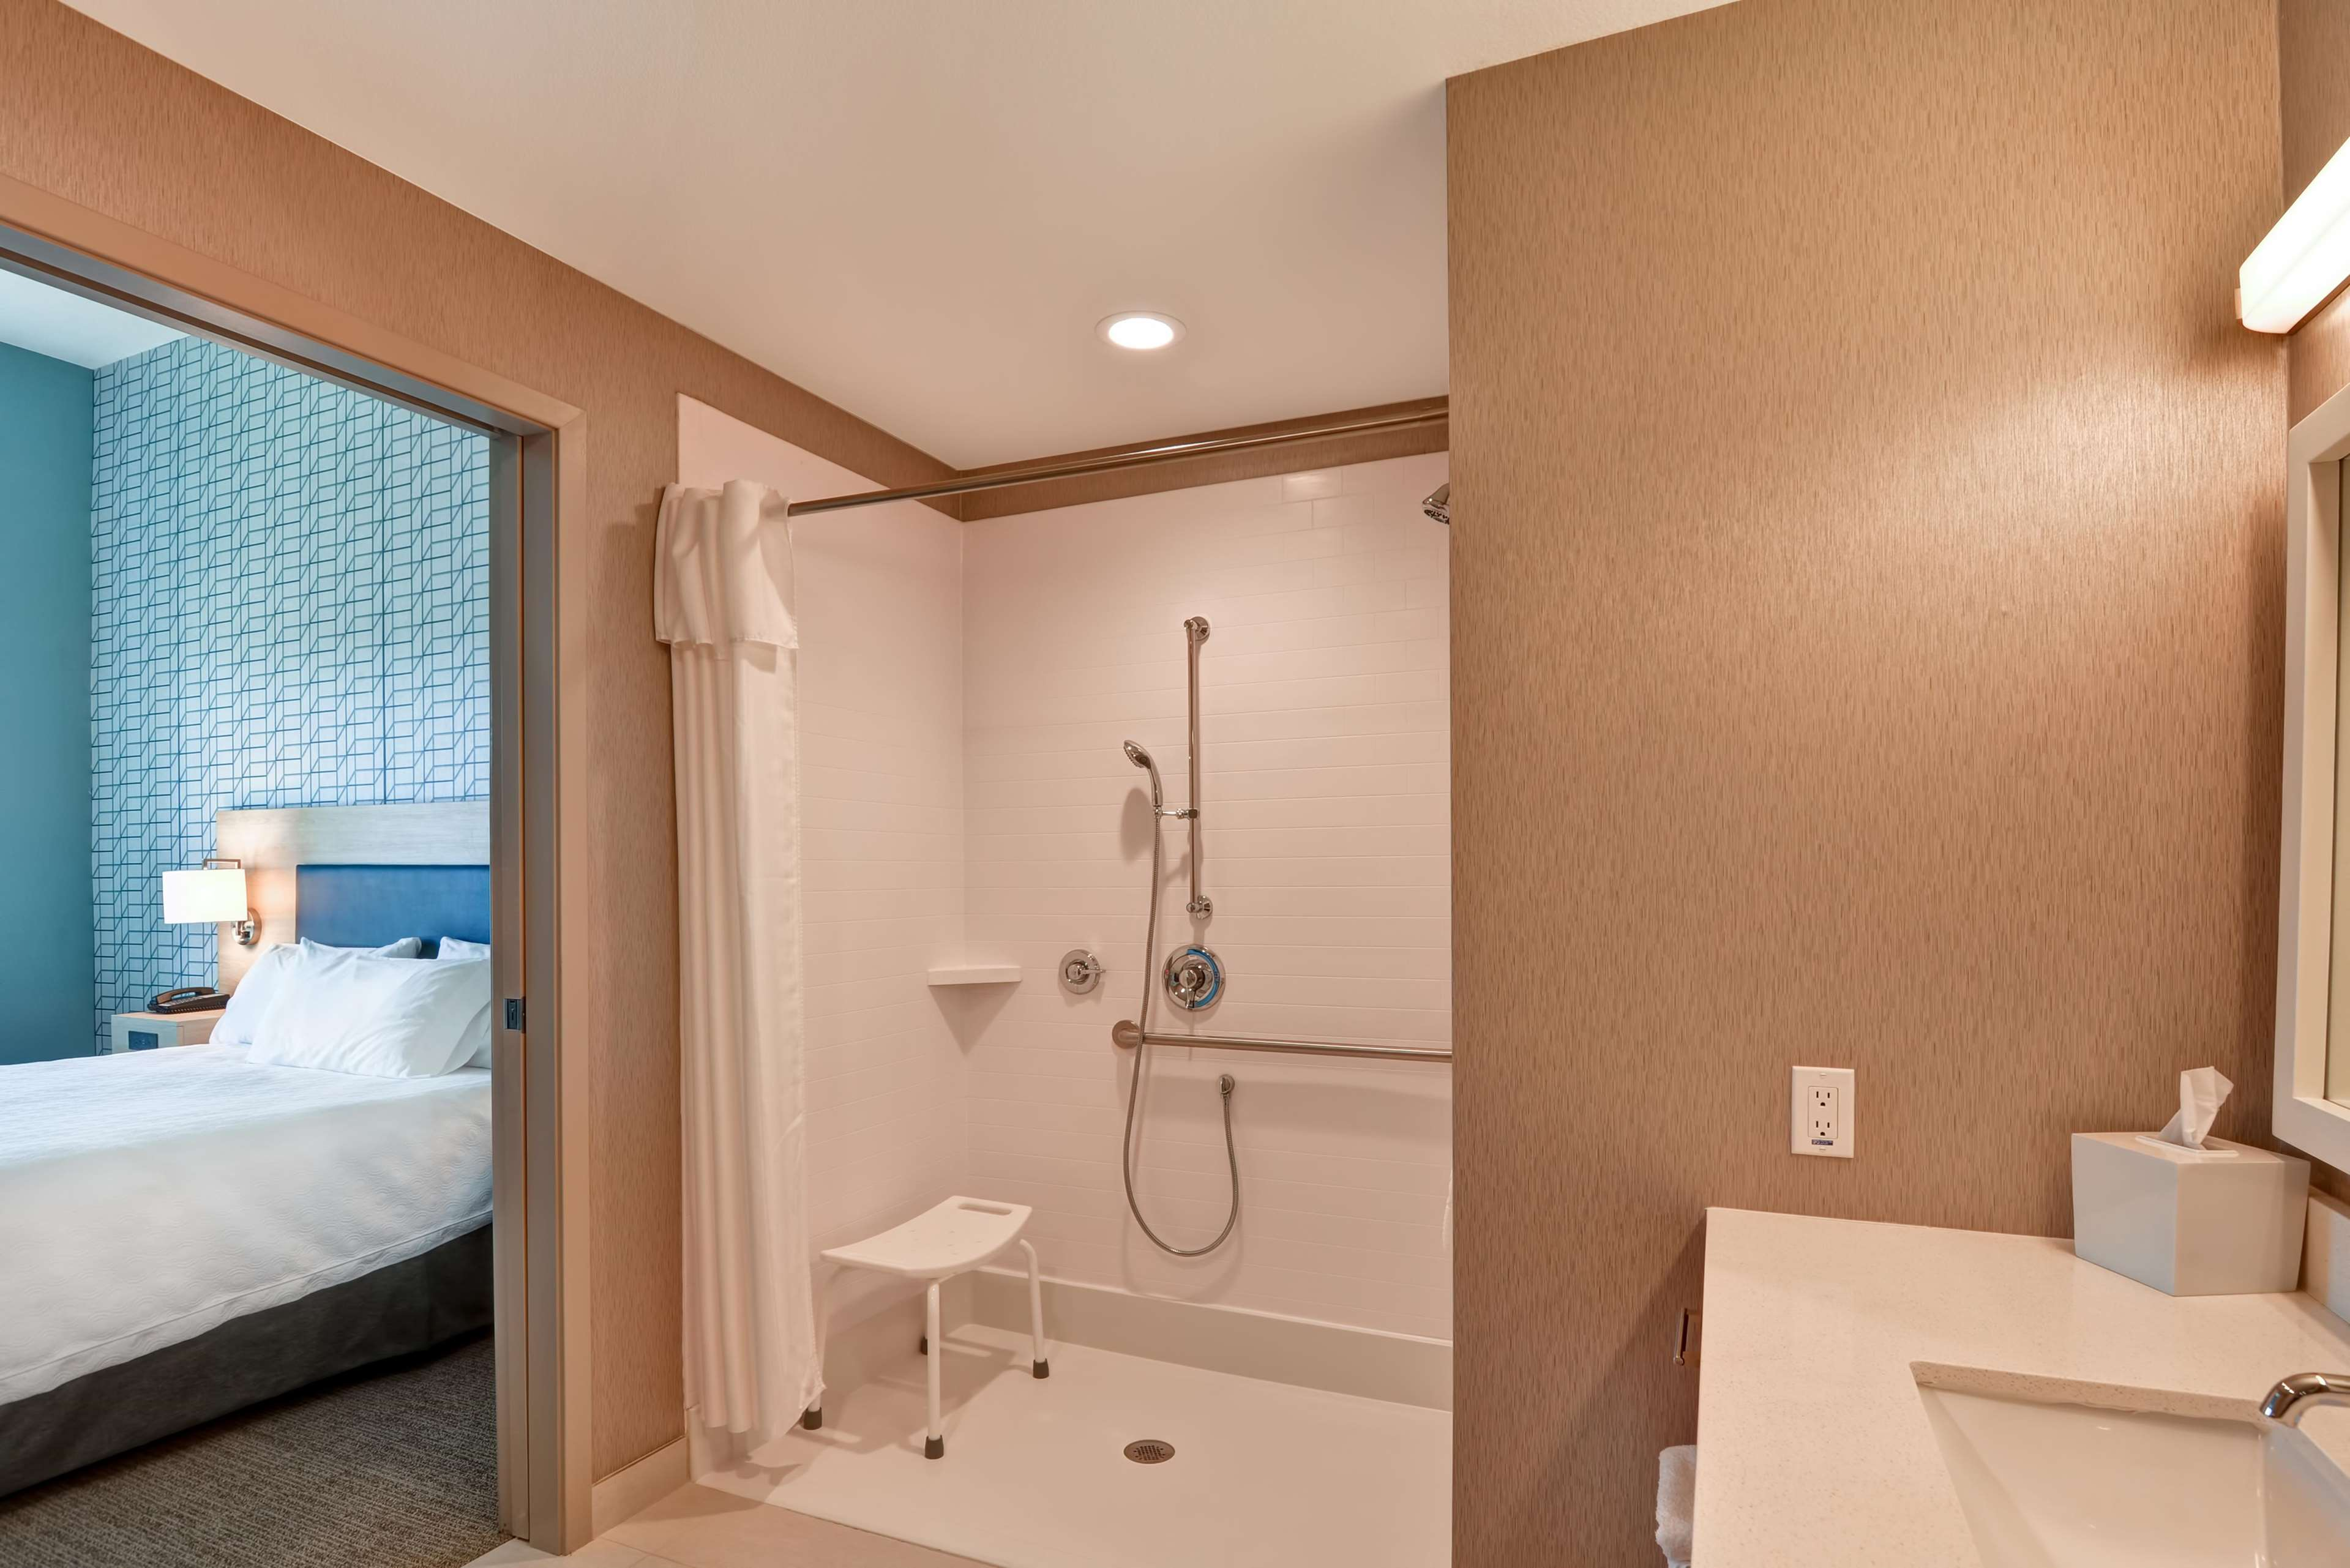 Home2 Suites by Hilton Palmdale image 17